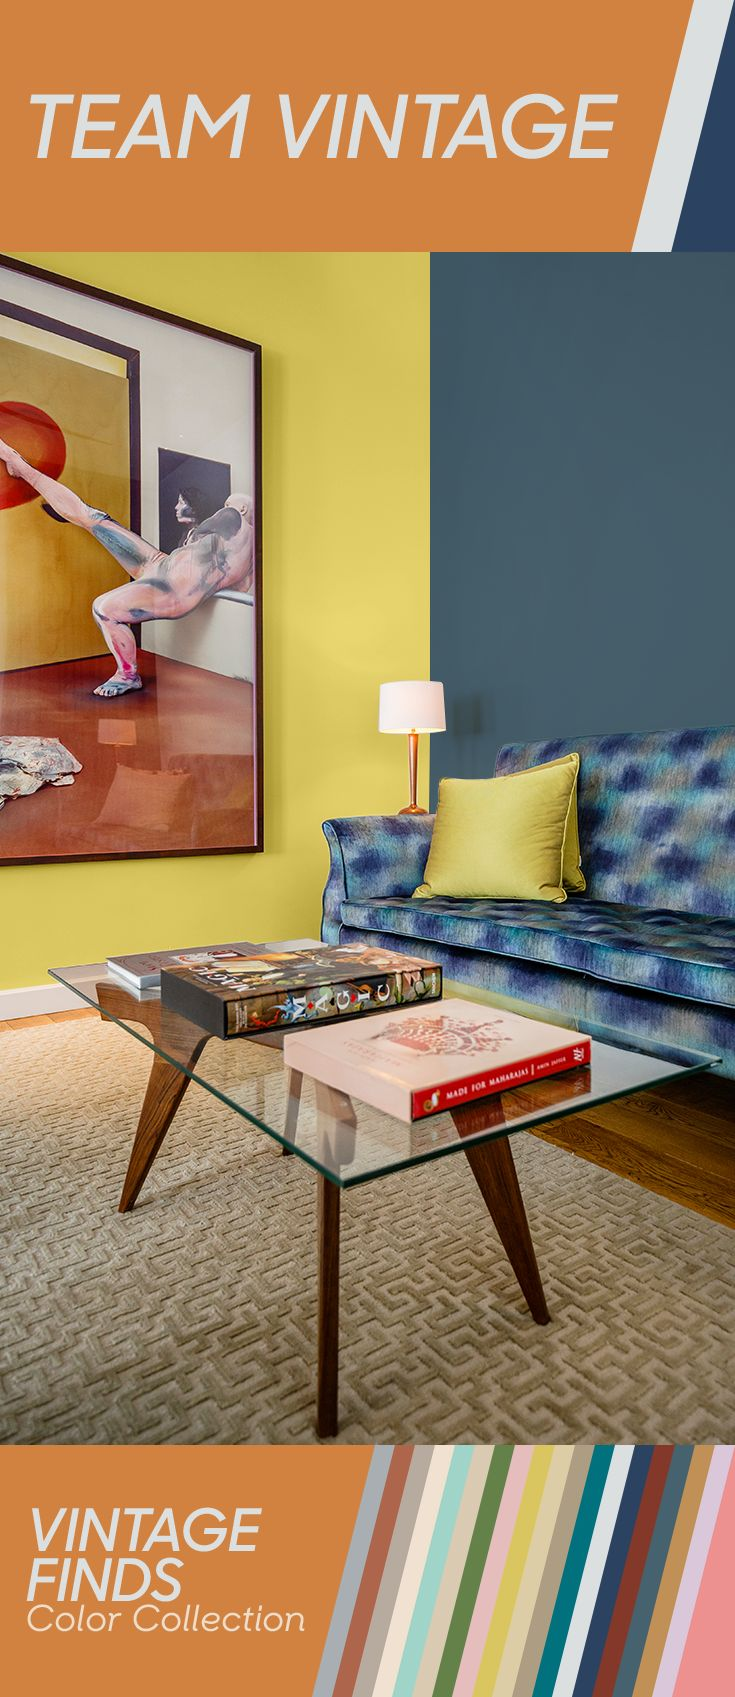 23 best Paint Champions images on Pinterest | Hgtv, Color boards and ...